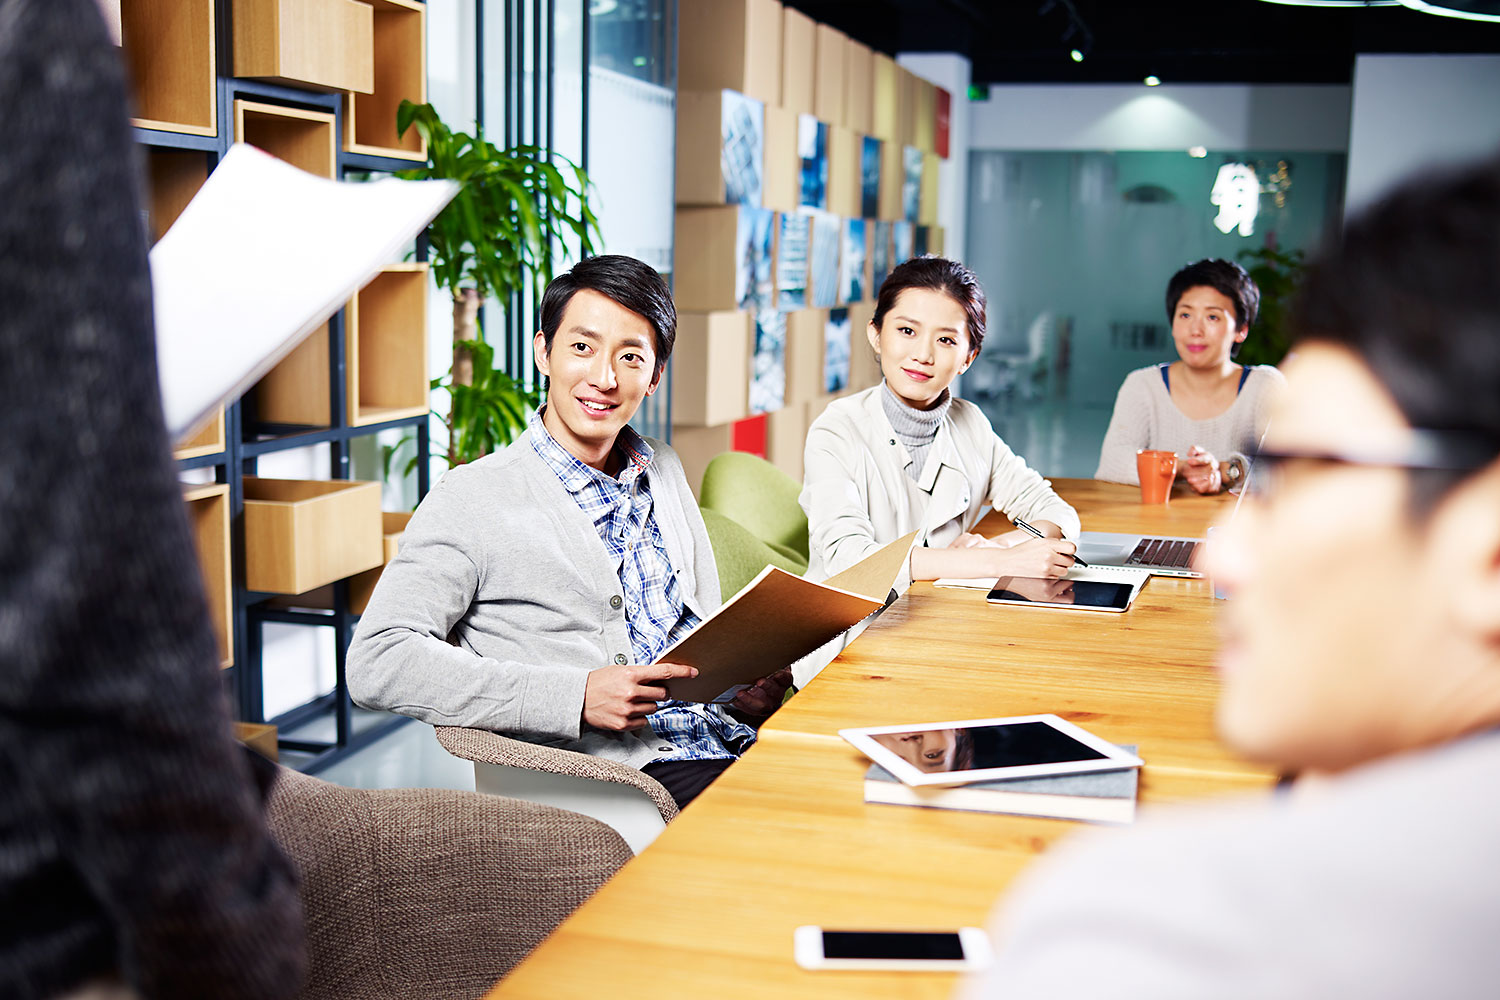 A team of young Asian entrepreneurs meet in an office to discuss ideas for new business. Entrepreneurship is viewed positively and perceived as a good career choice in Thailand.